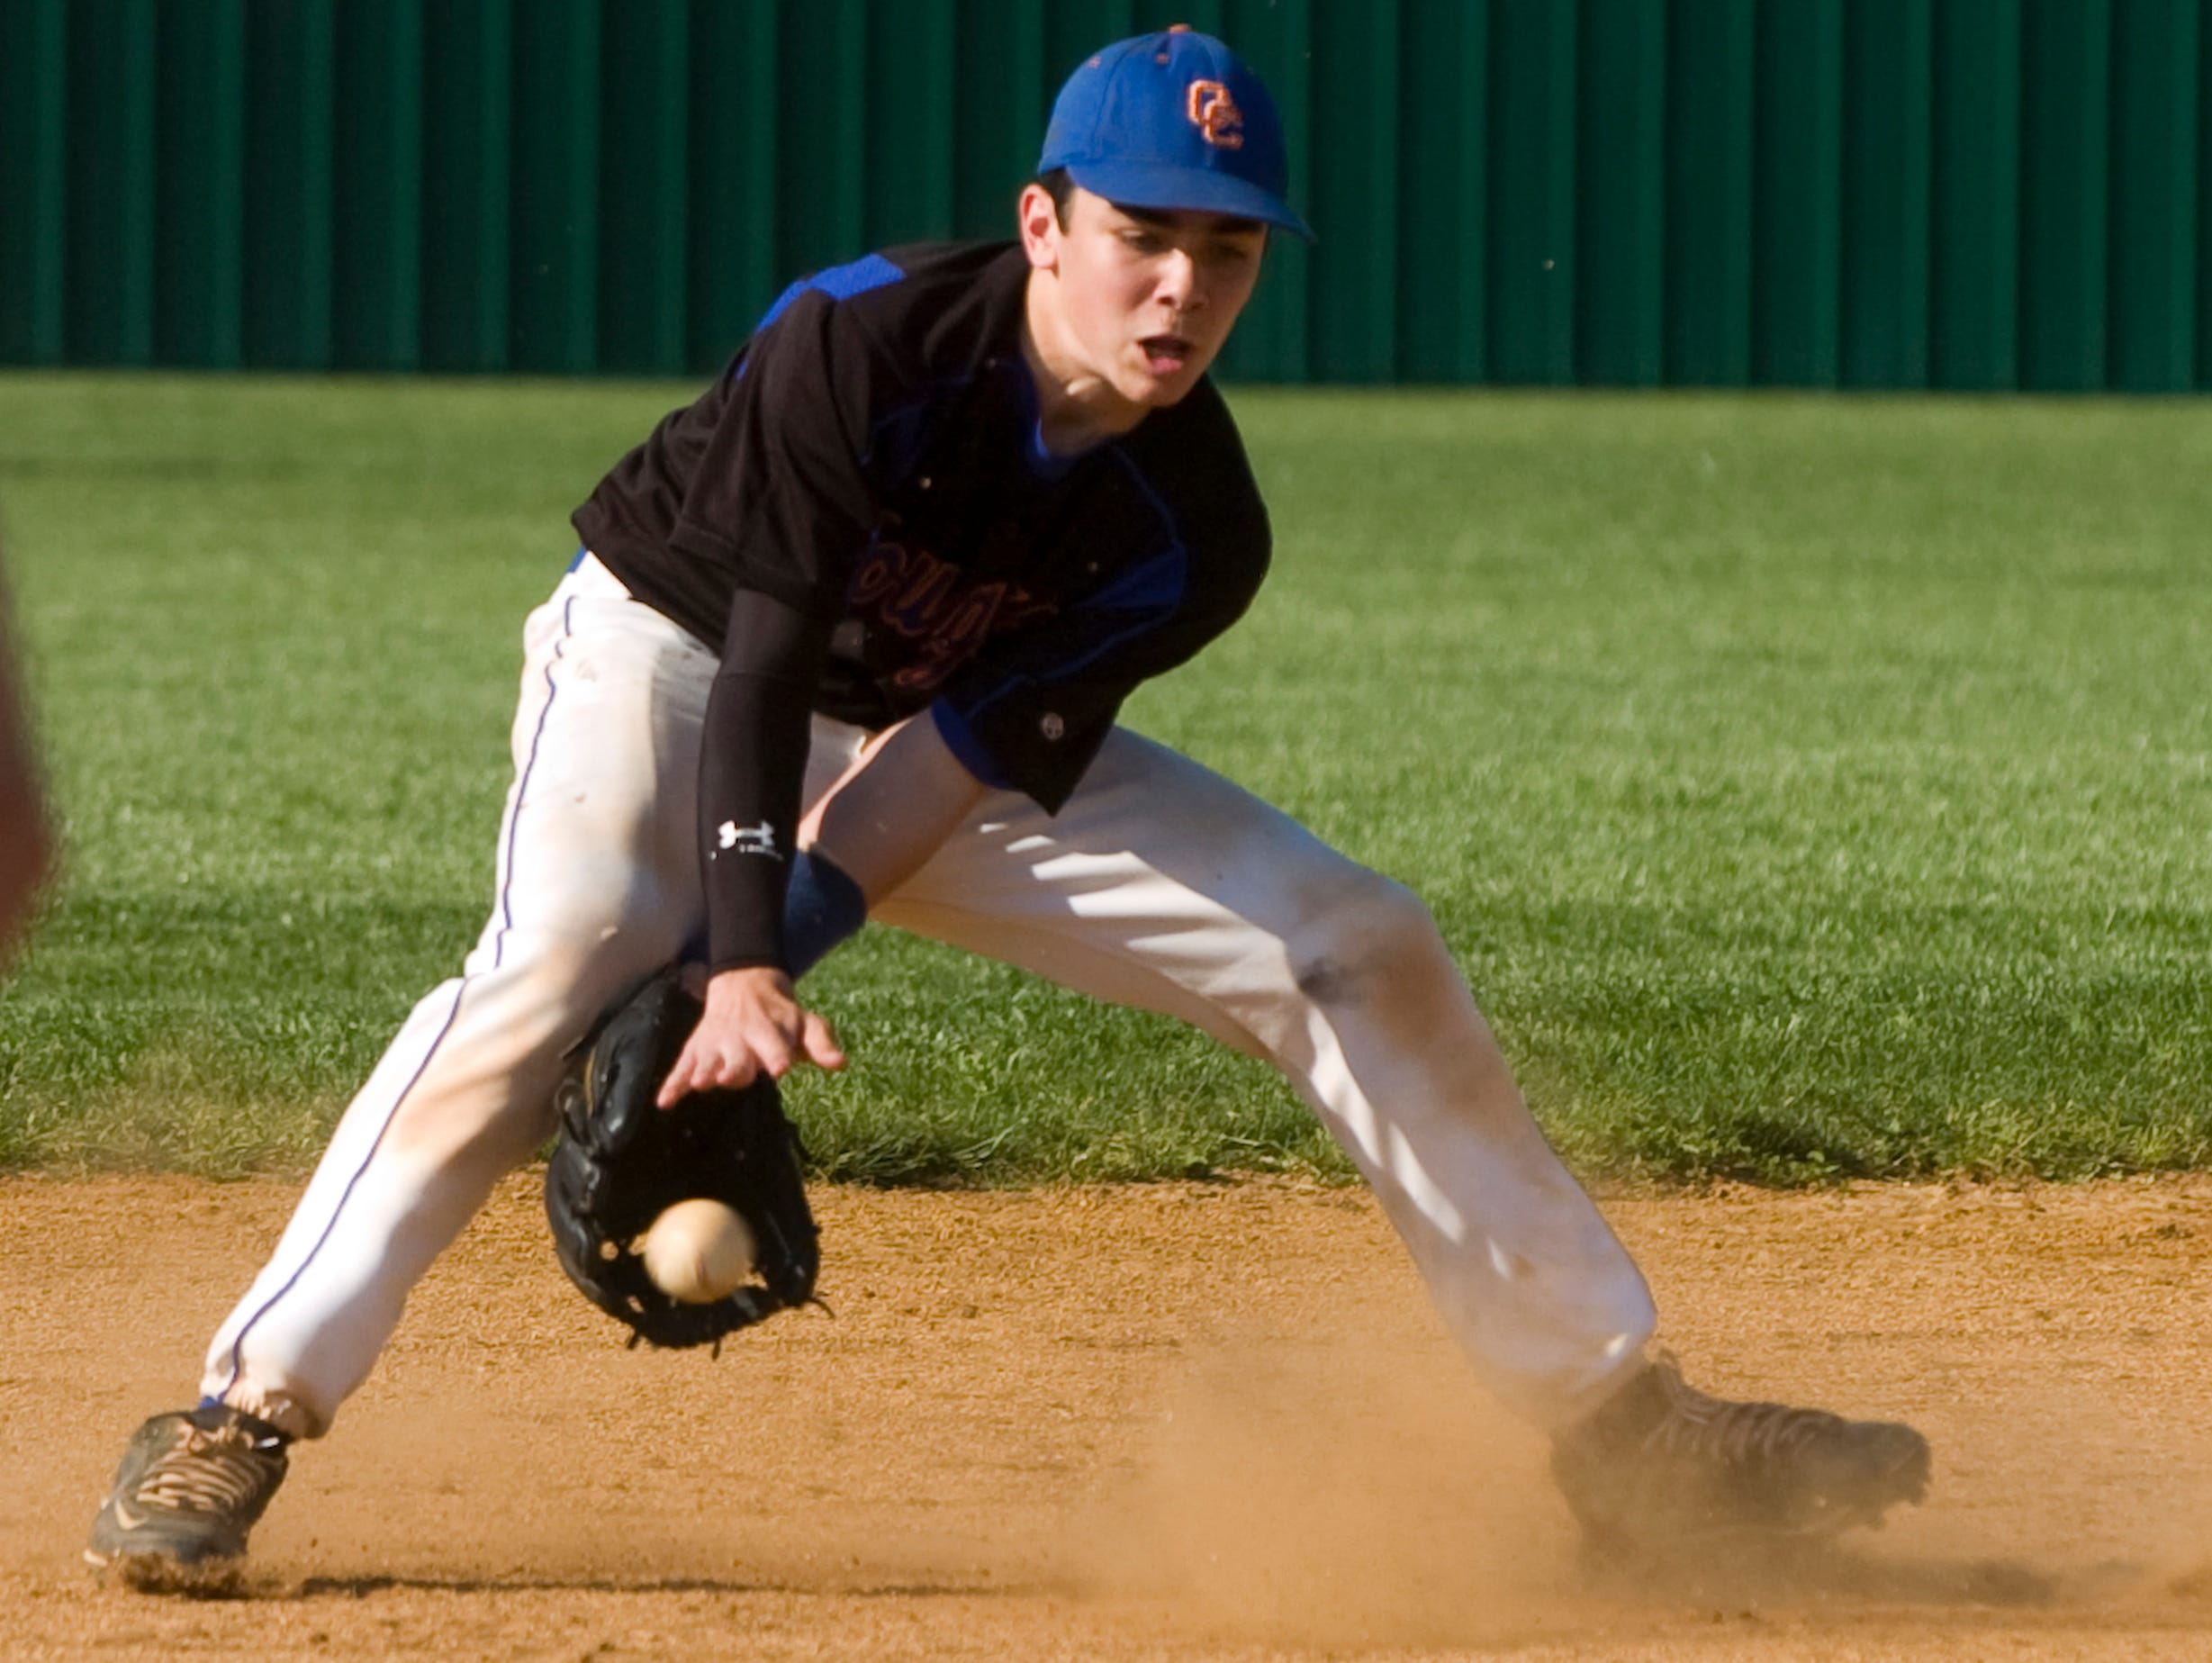 Campbell County's Bo Ferris makes a catch. Halls defeats Campbell County 13-1 at Halls on Thursday, May. 6, 2010.